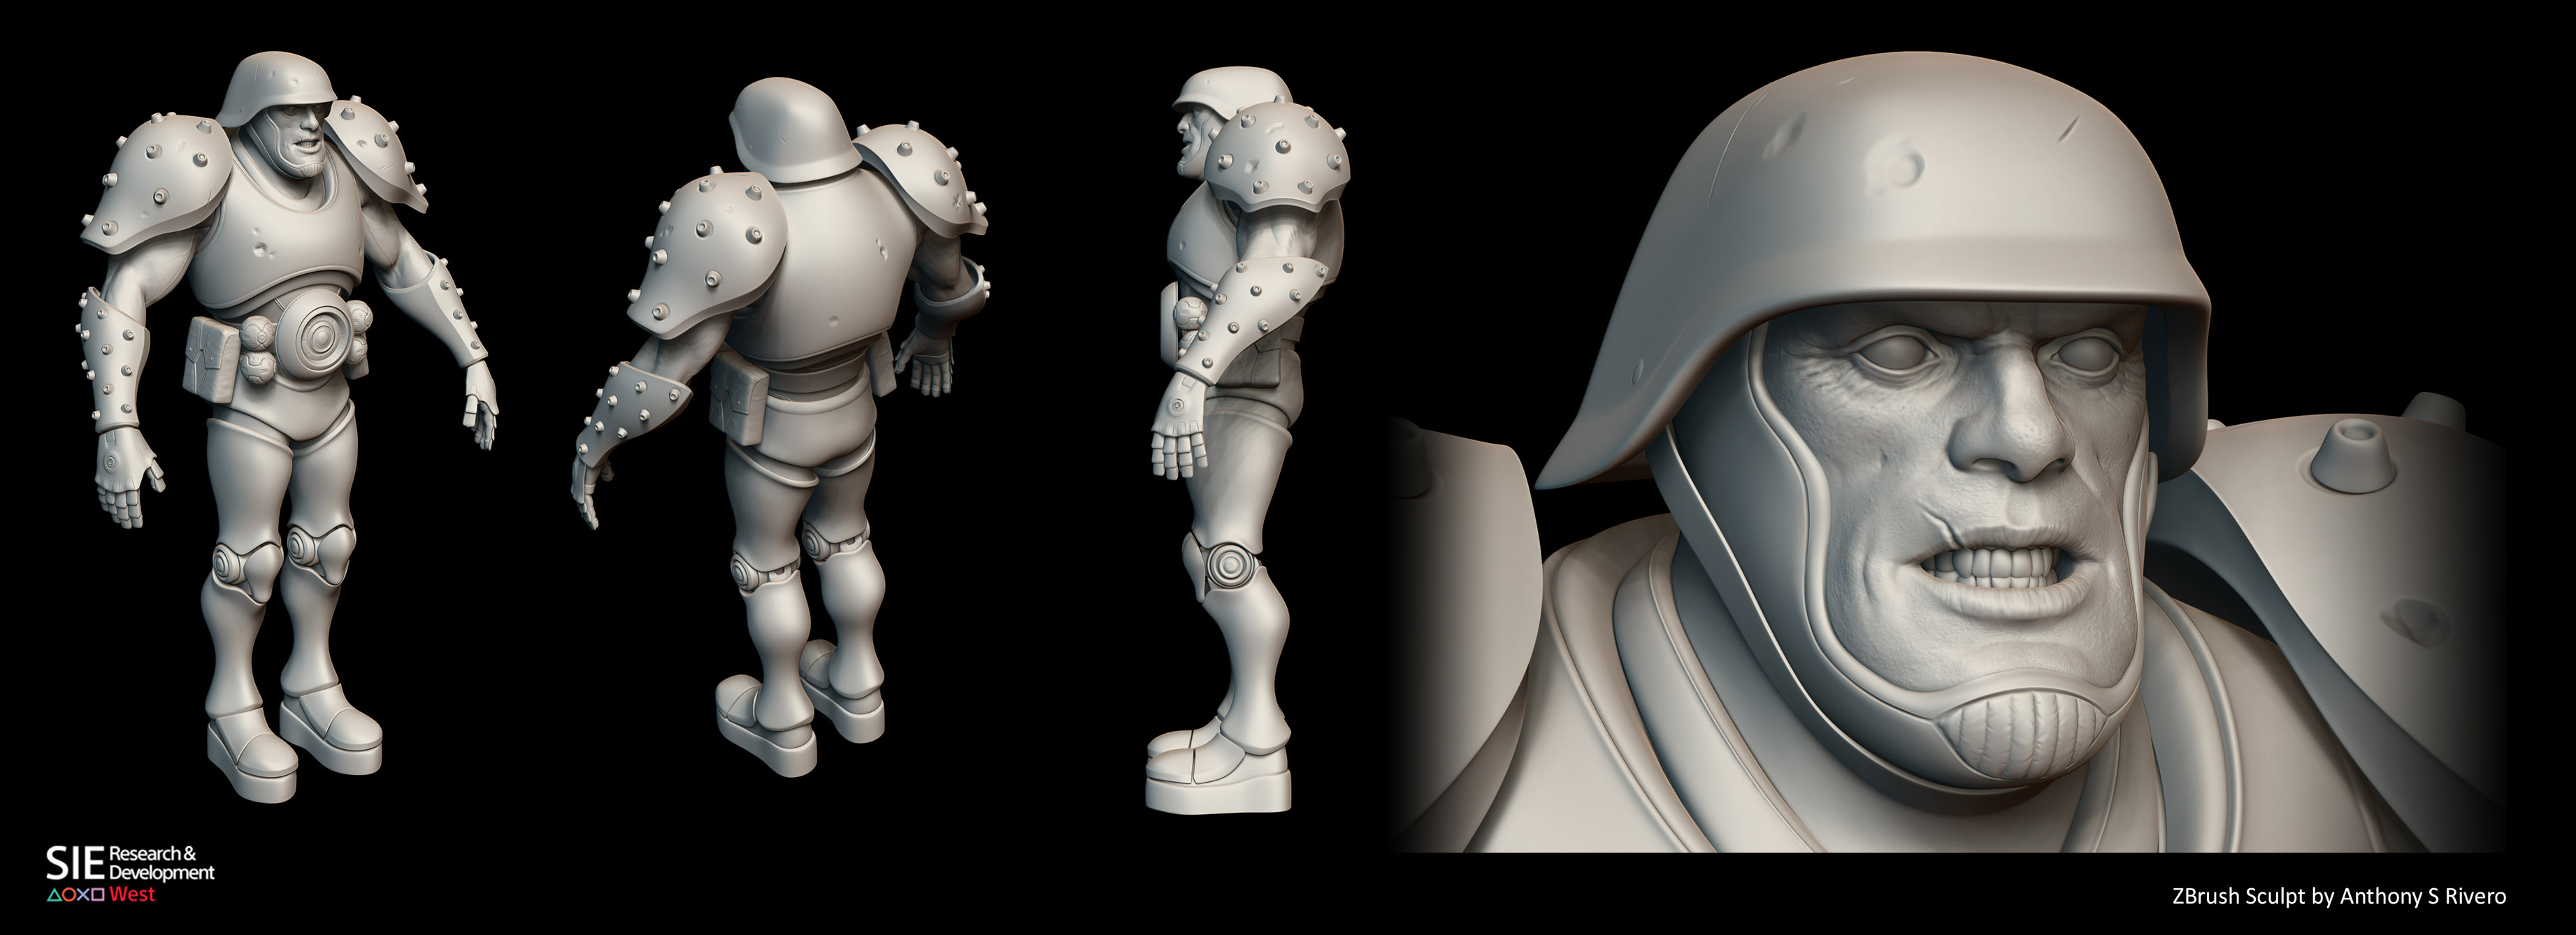 soldier_zbrush_turnaround_01small.jpg